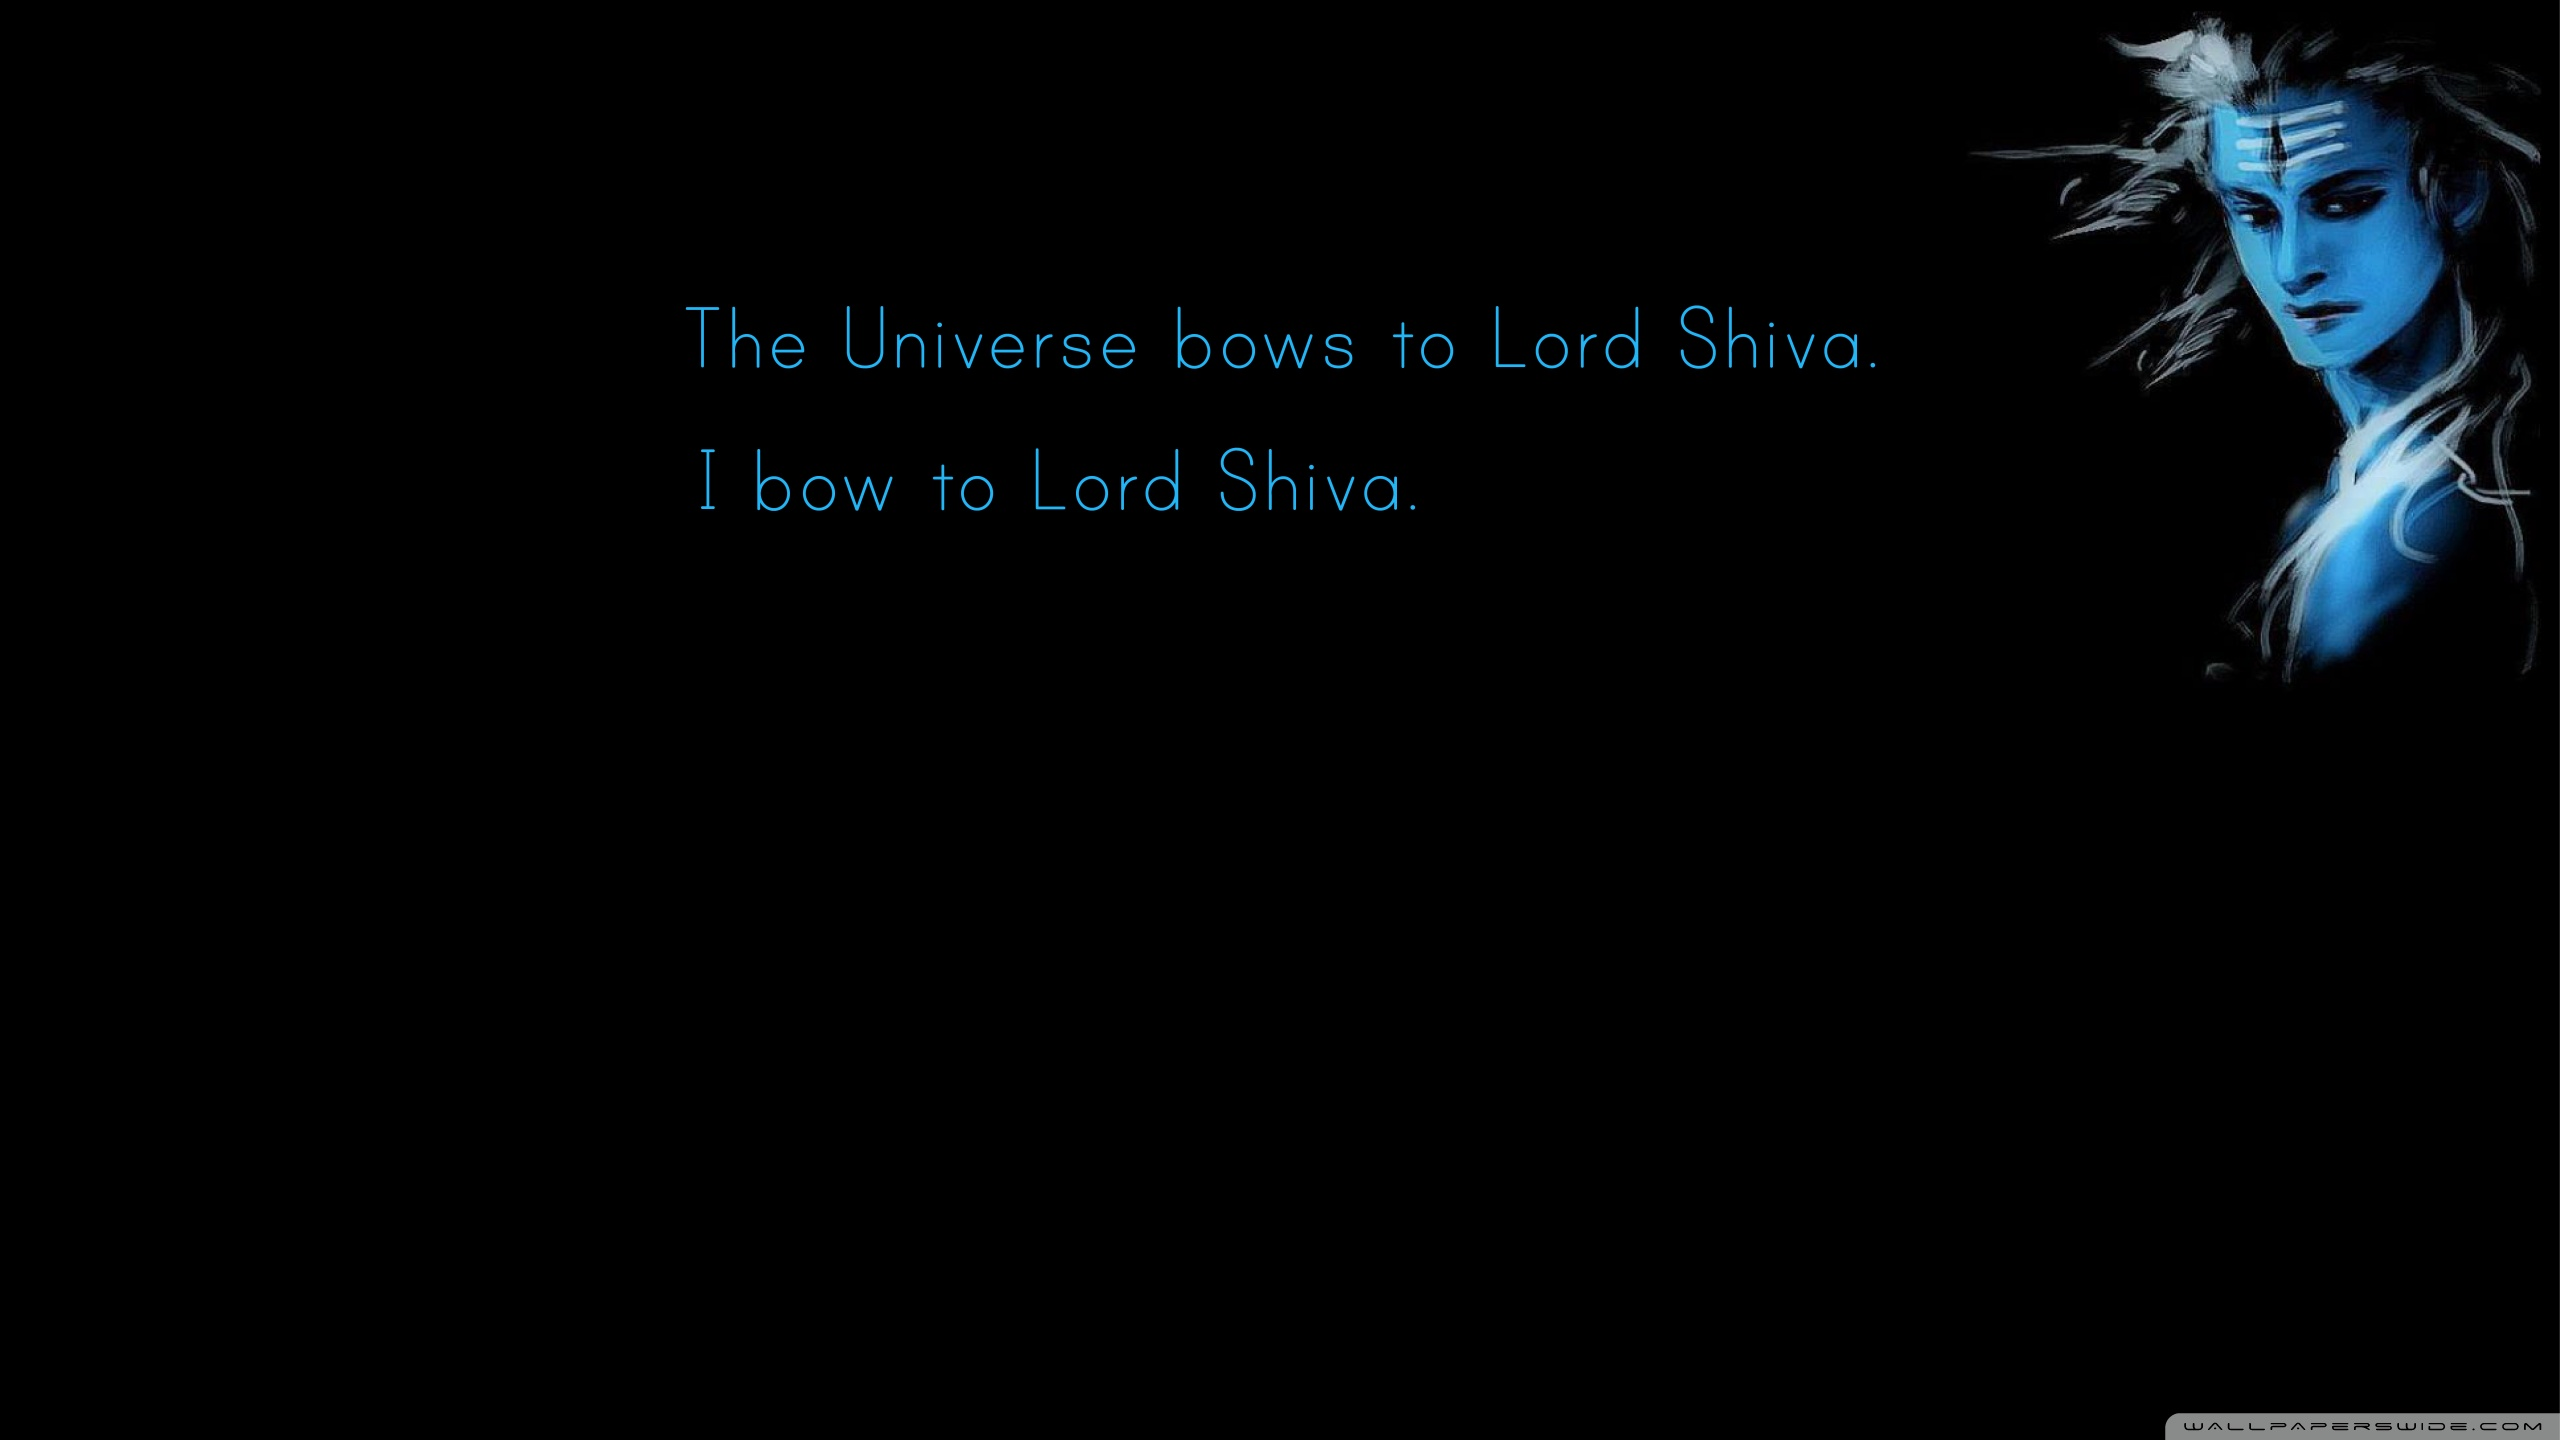 Lord Shiva Animated Wallpapers For Mobile Lord Shiva 4k Hd Desktop Wallpaper For 4k Ultra Hd Tv